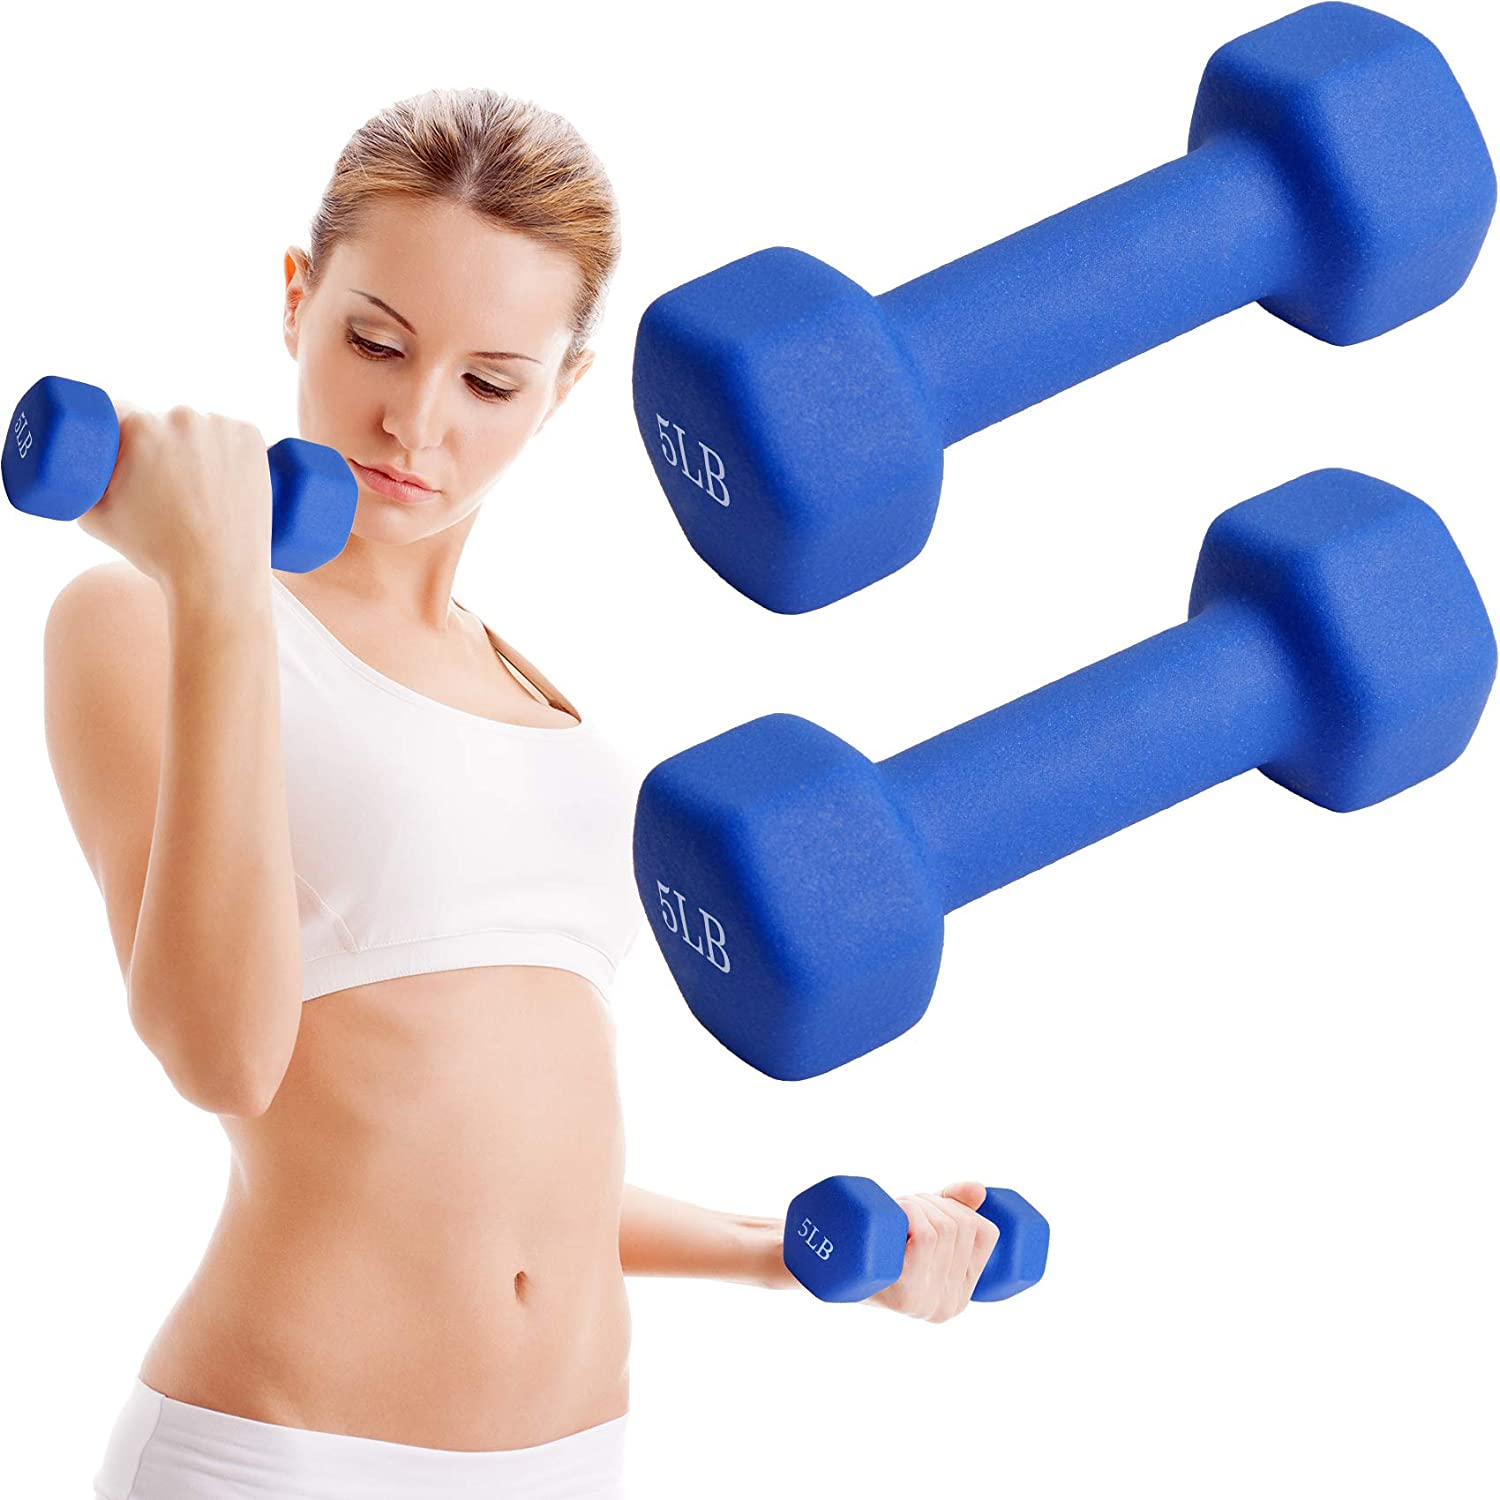 Strength Building Weight Loss Redacel Neoprene Workout Dumbbell Hand Weights,All-Purpose Dumbbells in Pair Non-Slip Made US